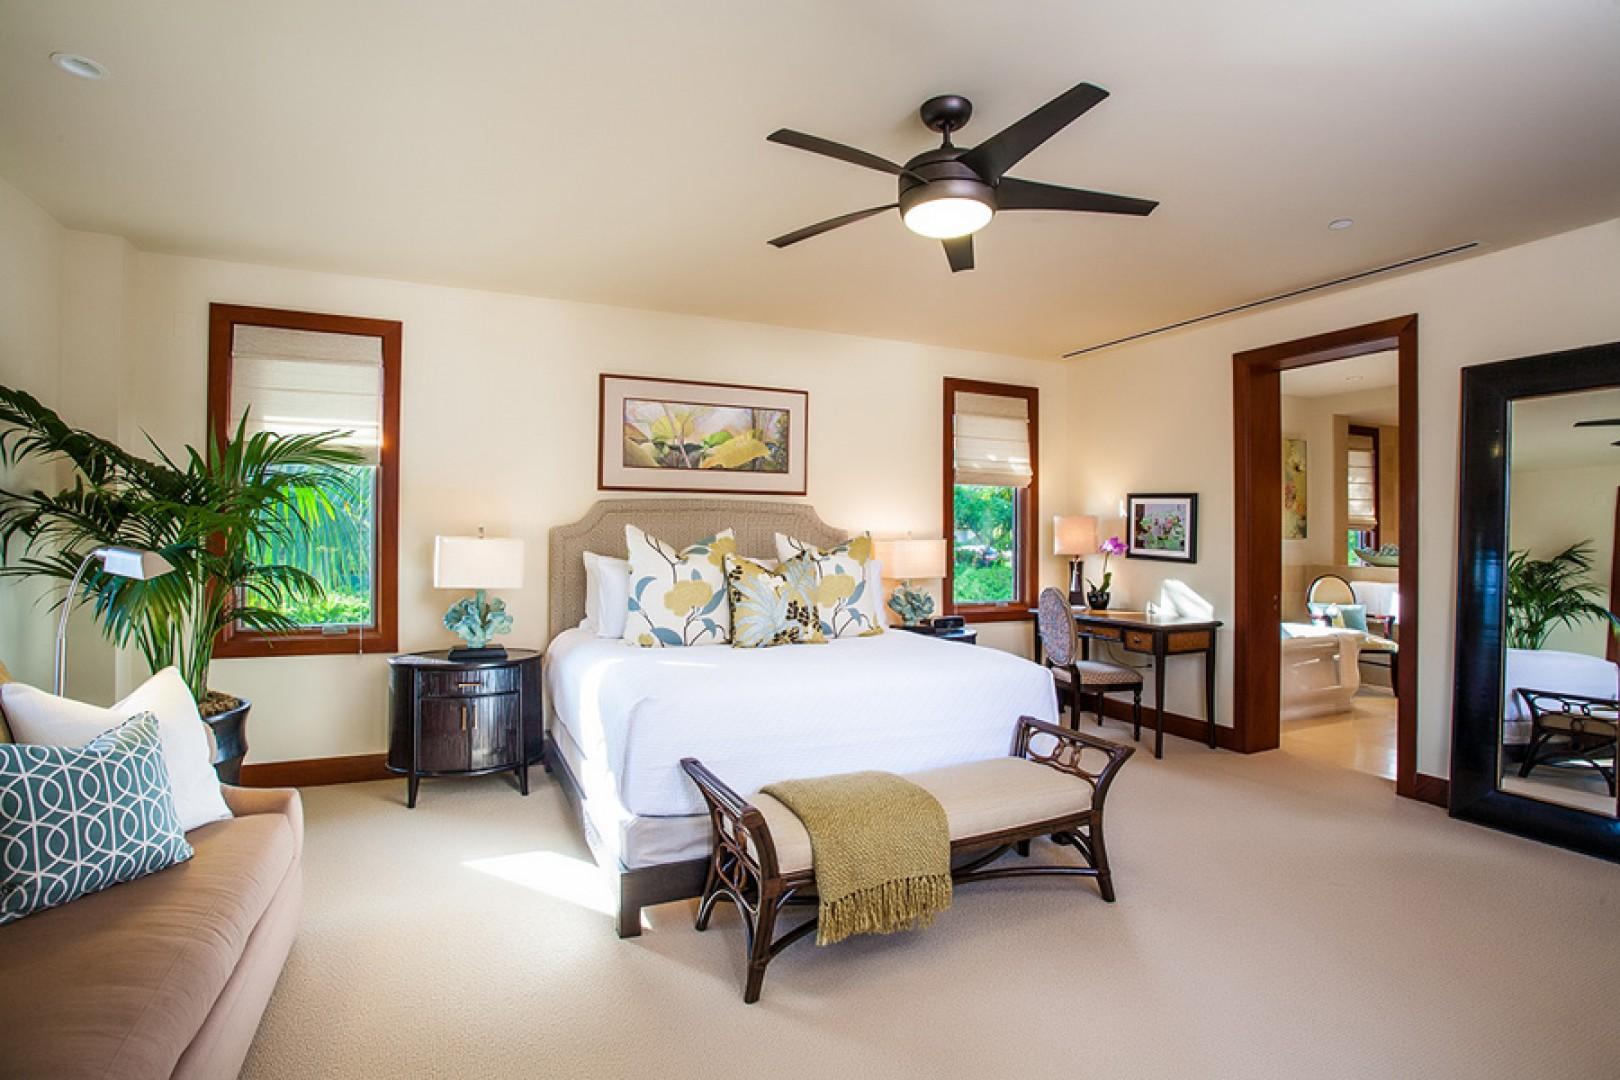 Sun Splash C301 - Ocean View Master Bedroom with King Bed and Private Bath